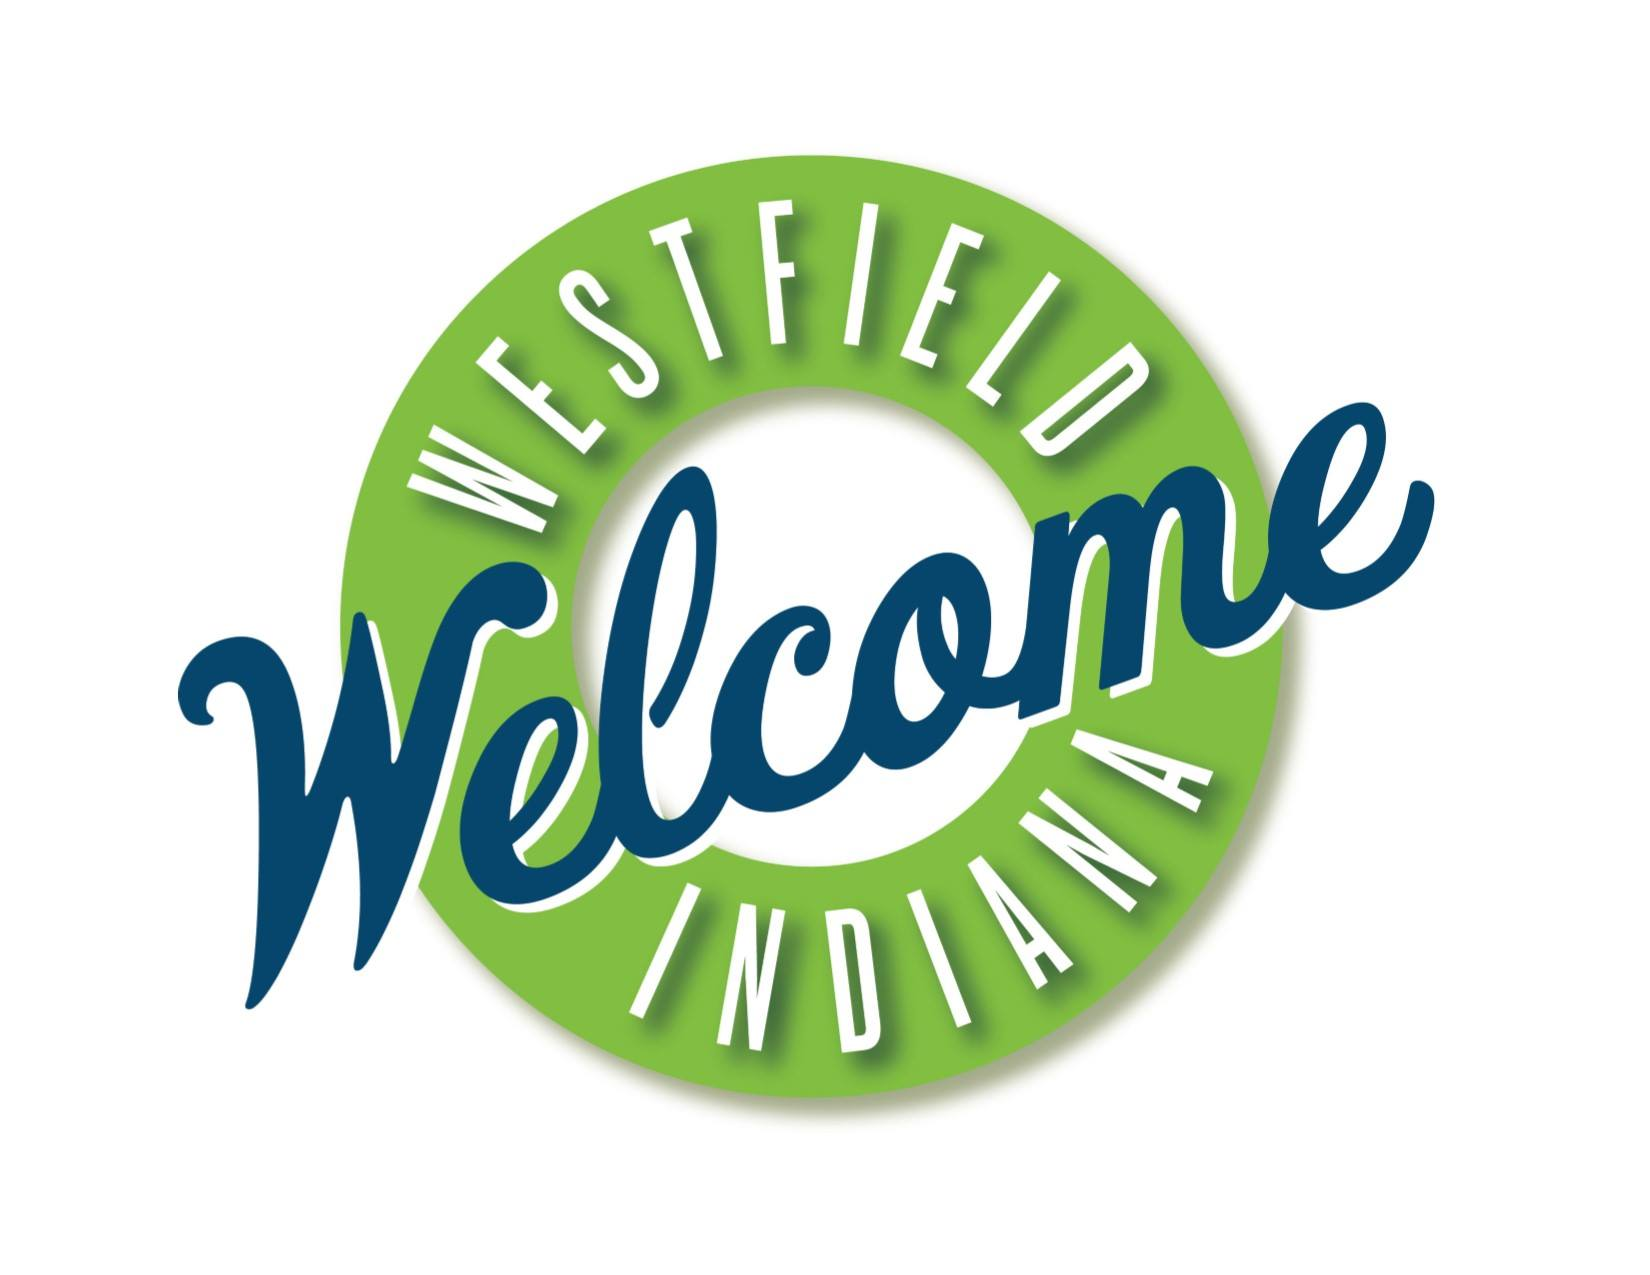 westfield welcome